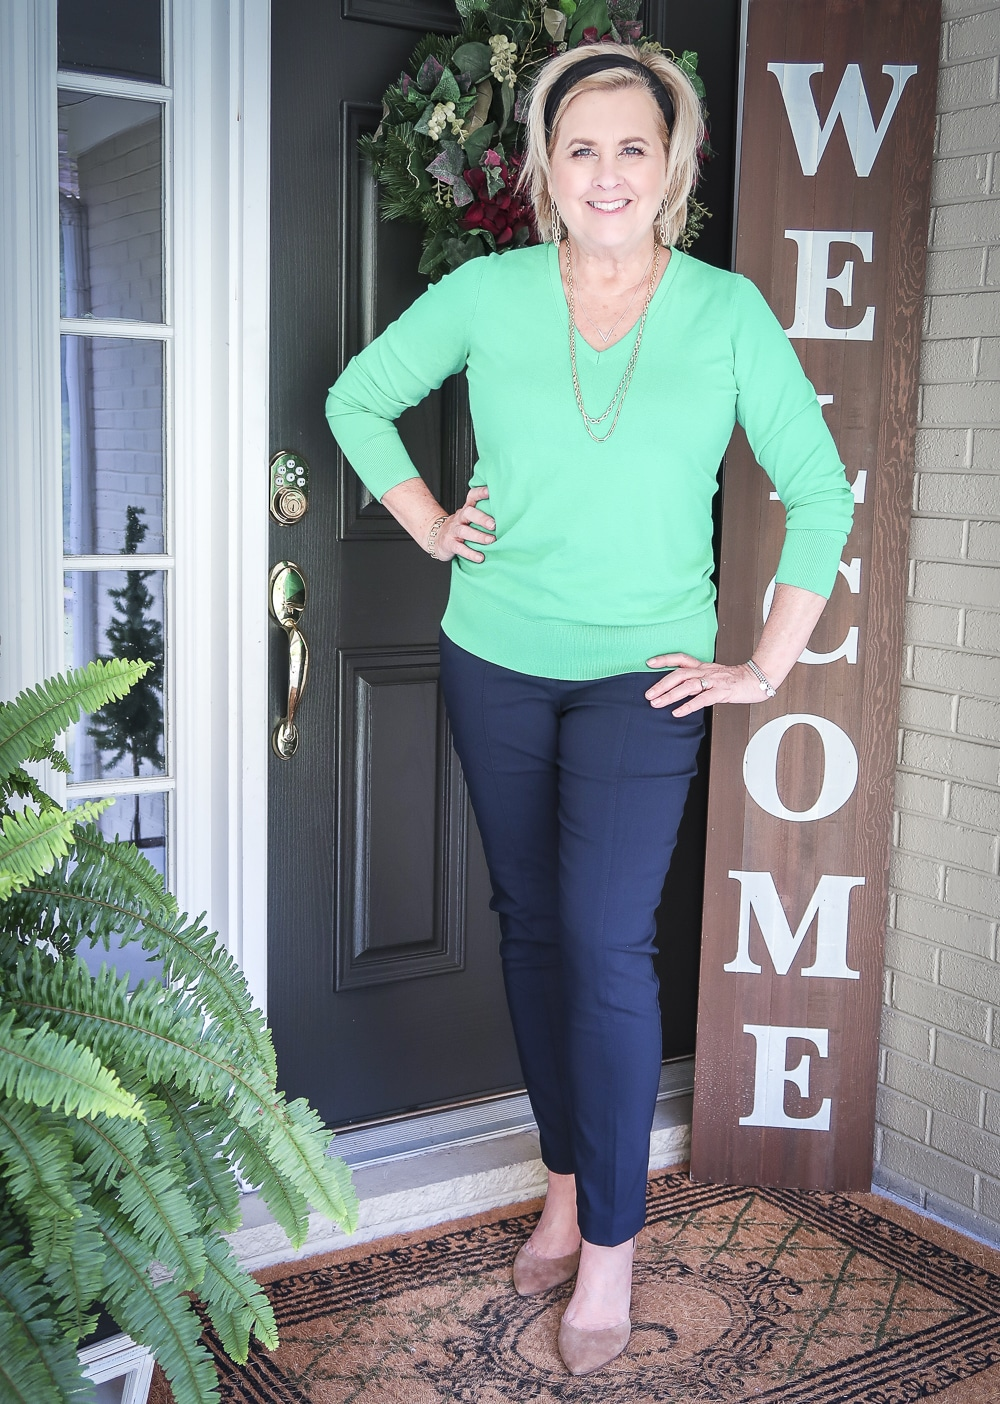 Fashion Blogger 50 Is Not Old is wearing an Emerald green sweater, navy dress pants, and neutral heels